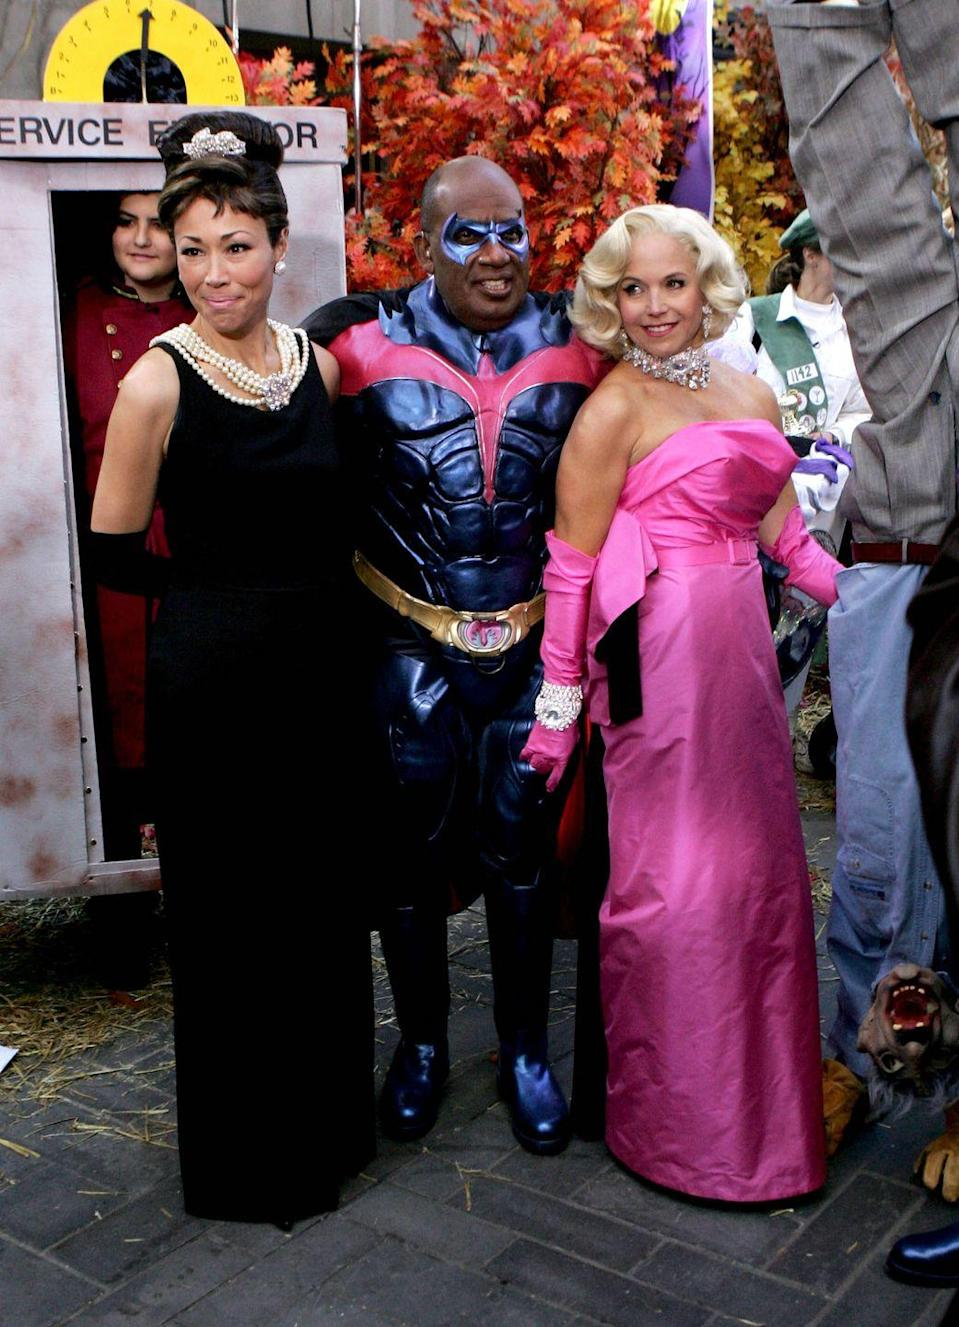 <p>Similar to 2006, the year prior didn't have much of a running theme. With that being said, the ladies of <em>Today</em> (Ann Curry and Katie Couric) both dressed up as iconic beauty legends Audrey Hepburn and Marilyn Monroe. As for Al, he chose to go as Batman's trusty sidekick Robin.</p>